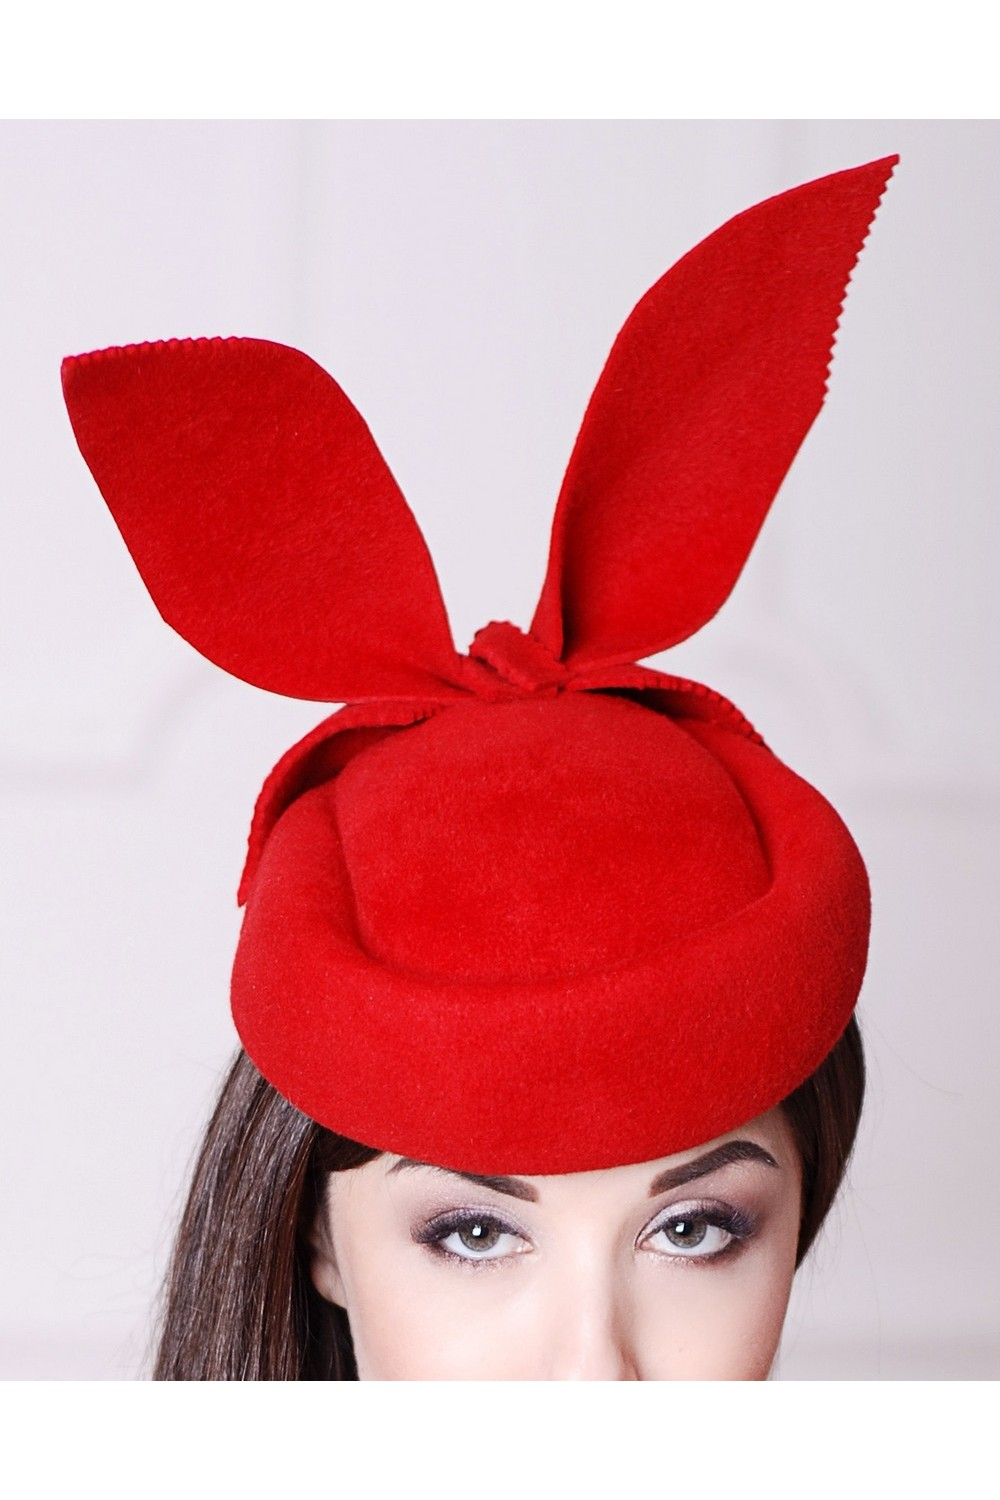 Buy Red felt women`s pillbox hat with bunny ears, Unique designer stylish hat